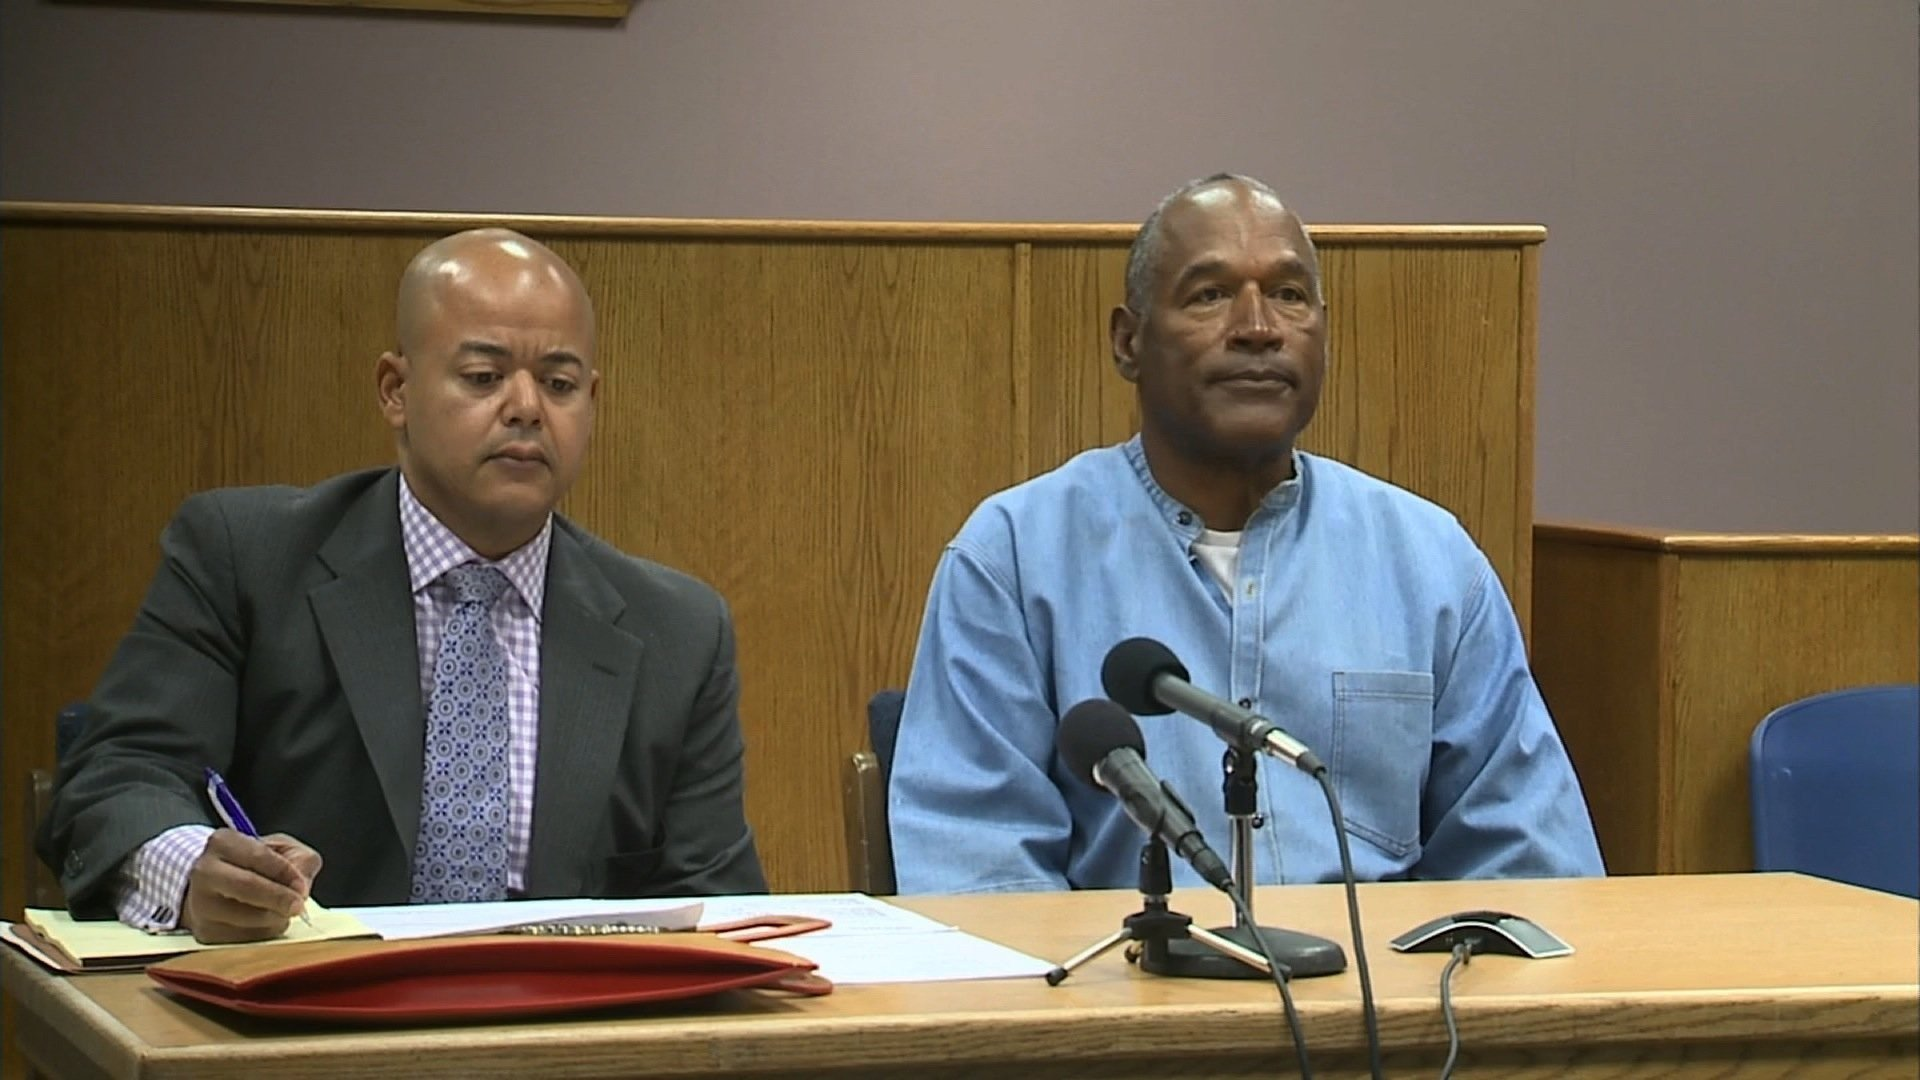 O.J. Simpson, 70, appears in court for his parole hearing on July 20, 2017. (POOL image)